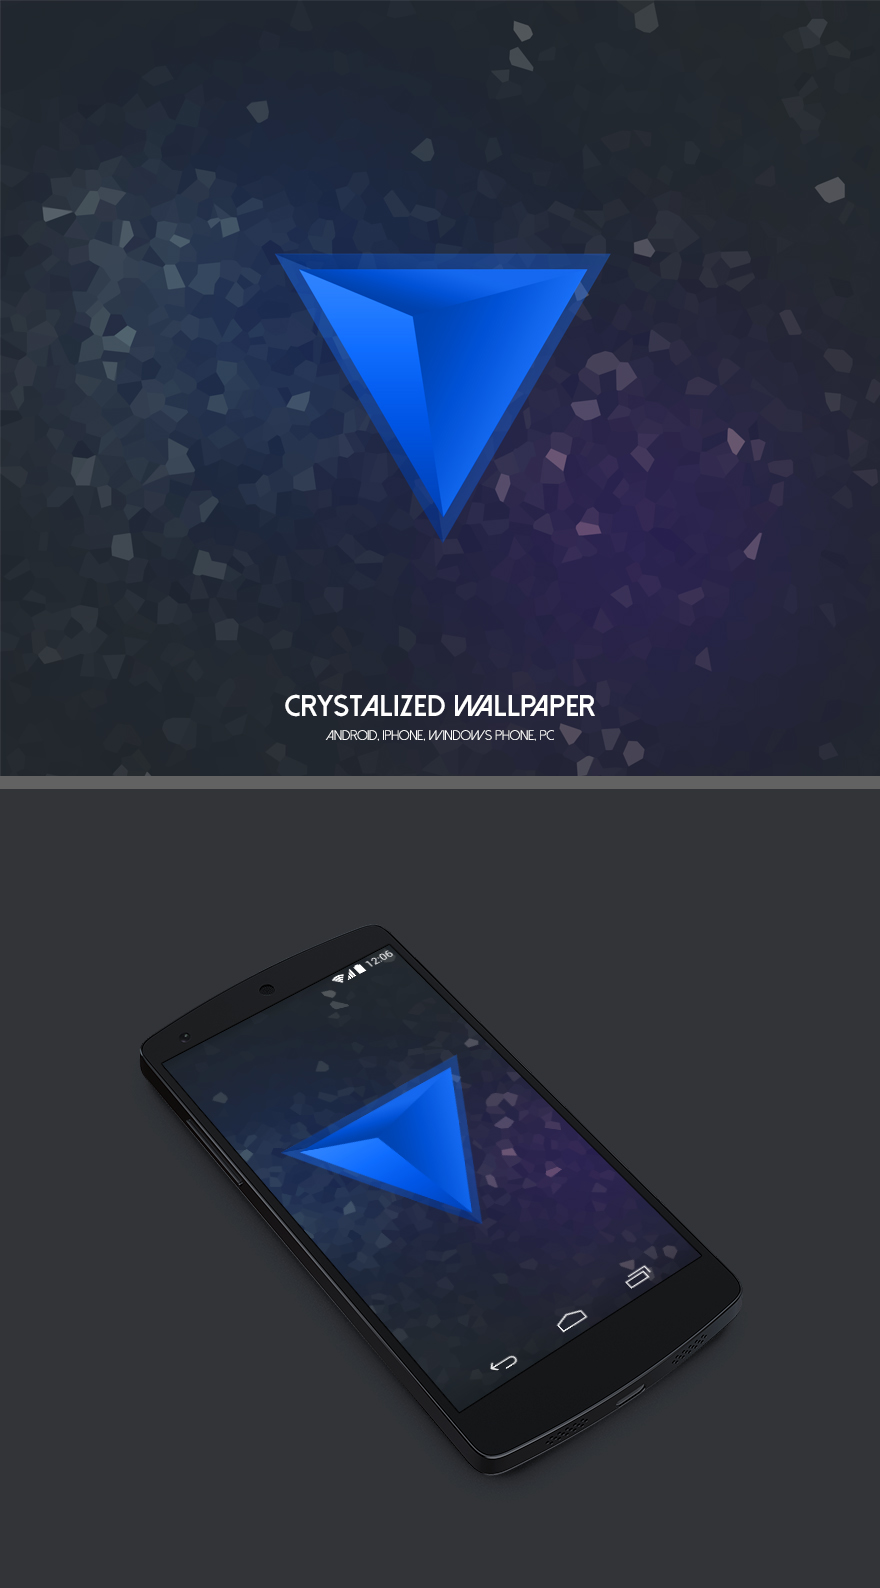 Crystalized Wallpaper by Martz90